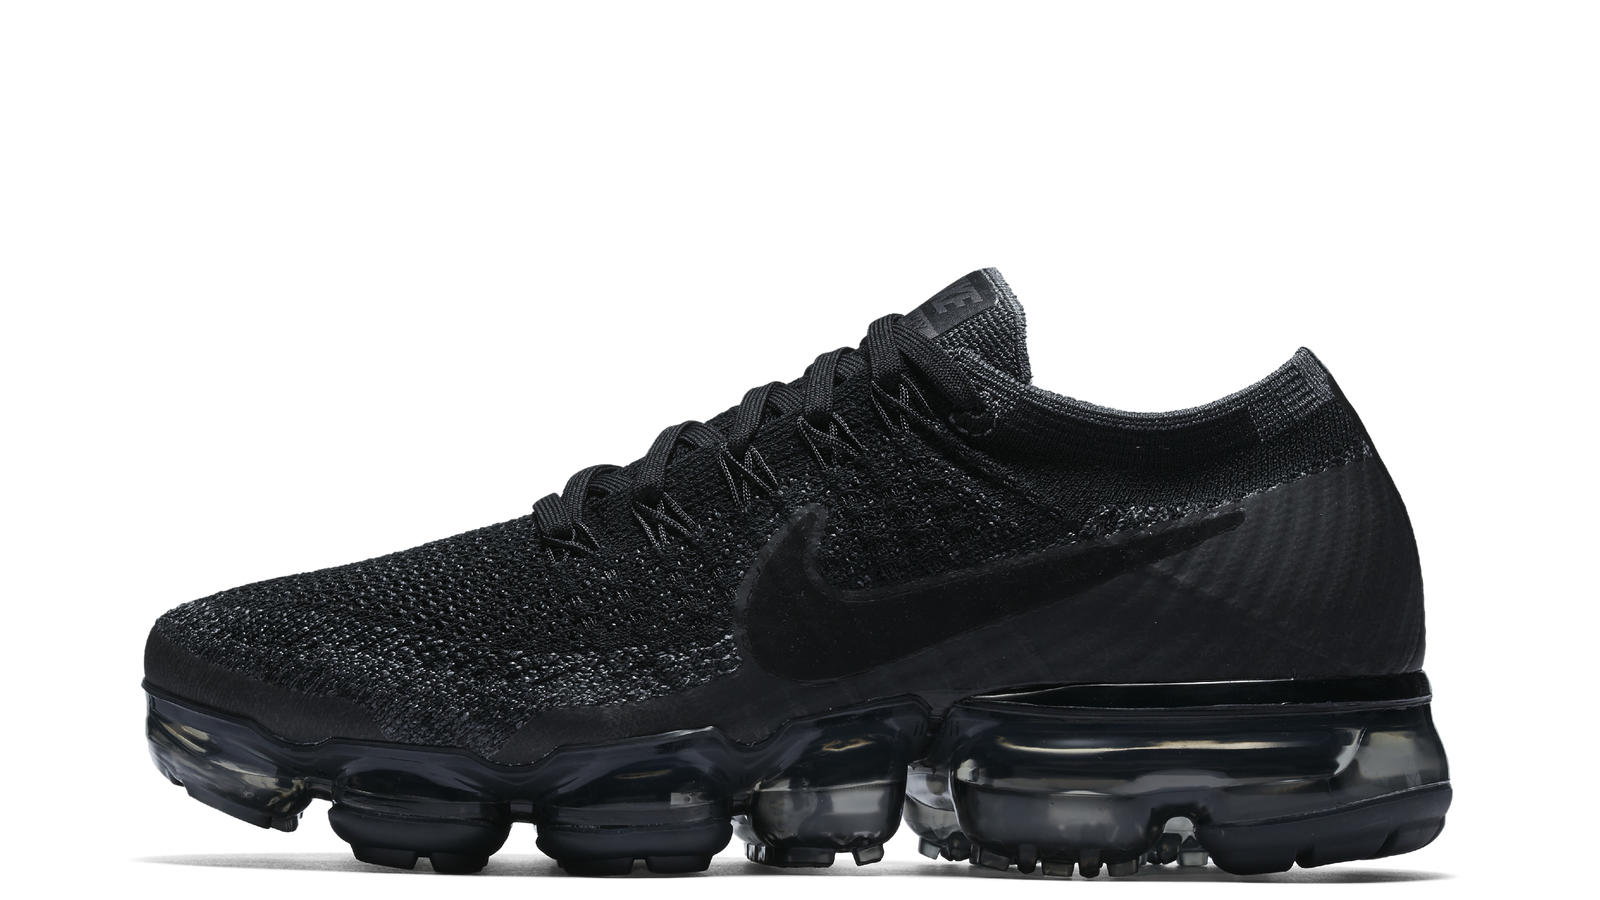 46be79b9cdf72 Nike Air VaporMax Flyknit (Pure Platinum). Shades of VaporMax 0